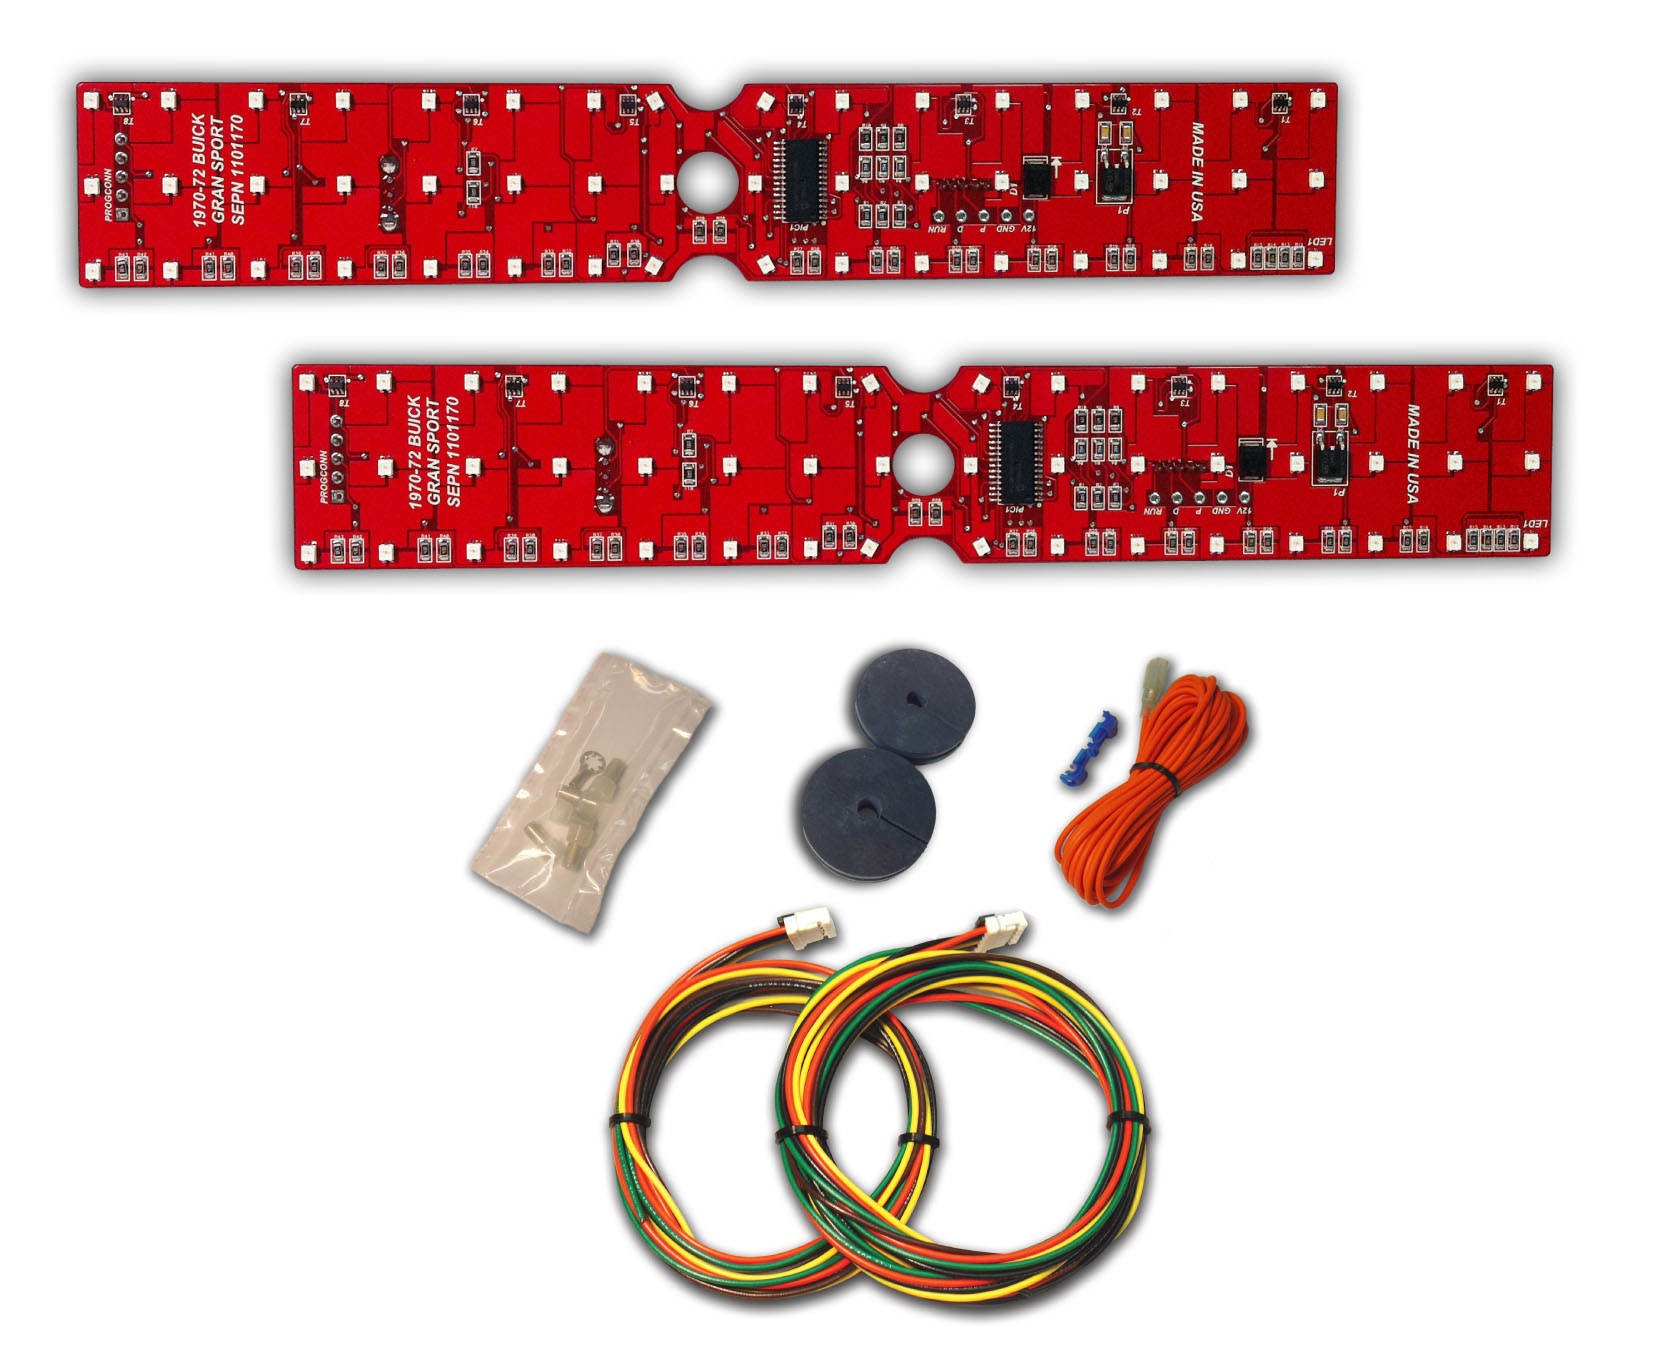 1968 Buick Gran Sport Wiring Diagram Trusted 1964 Gto Dash 1970 Nova Rear Lights Harness 1956